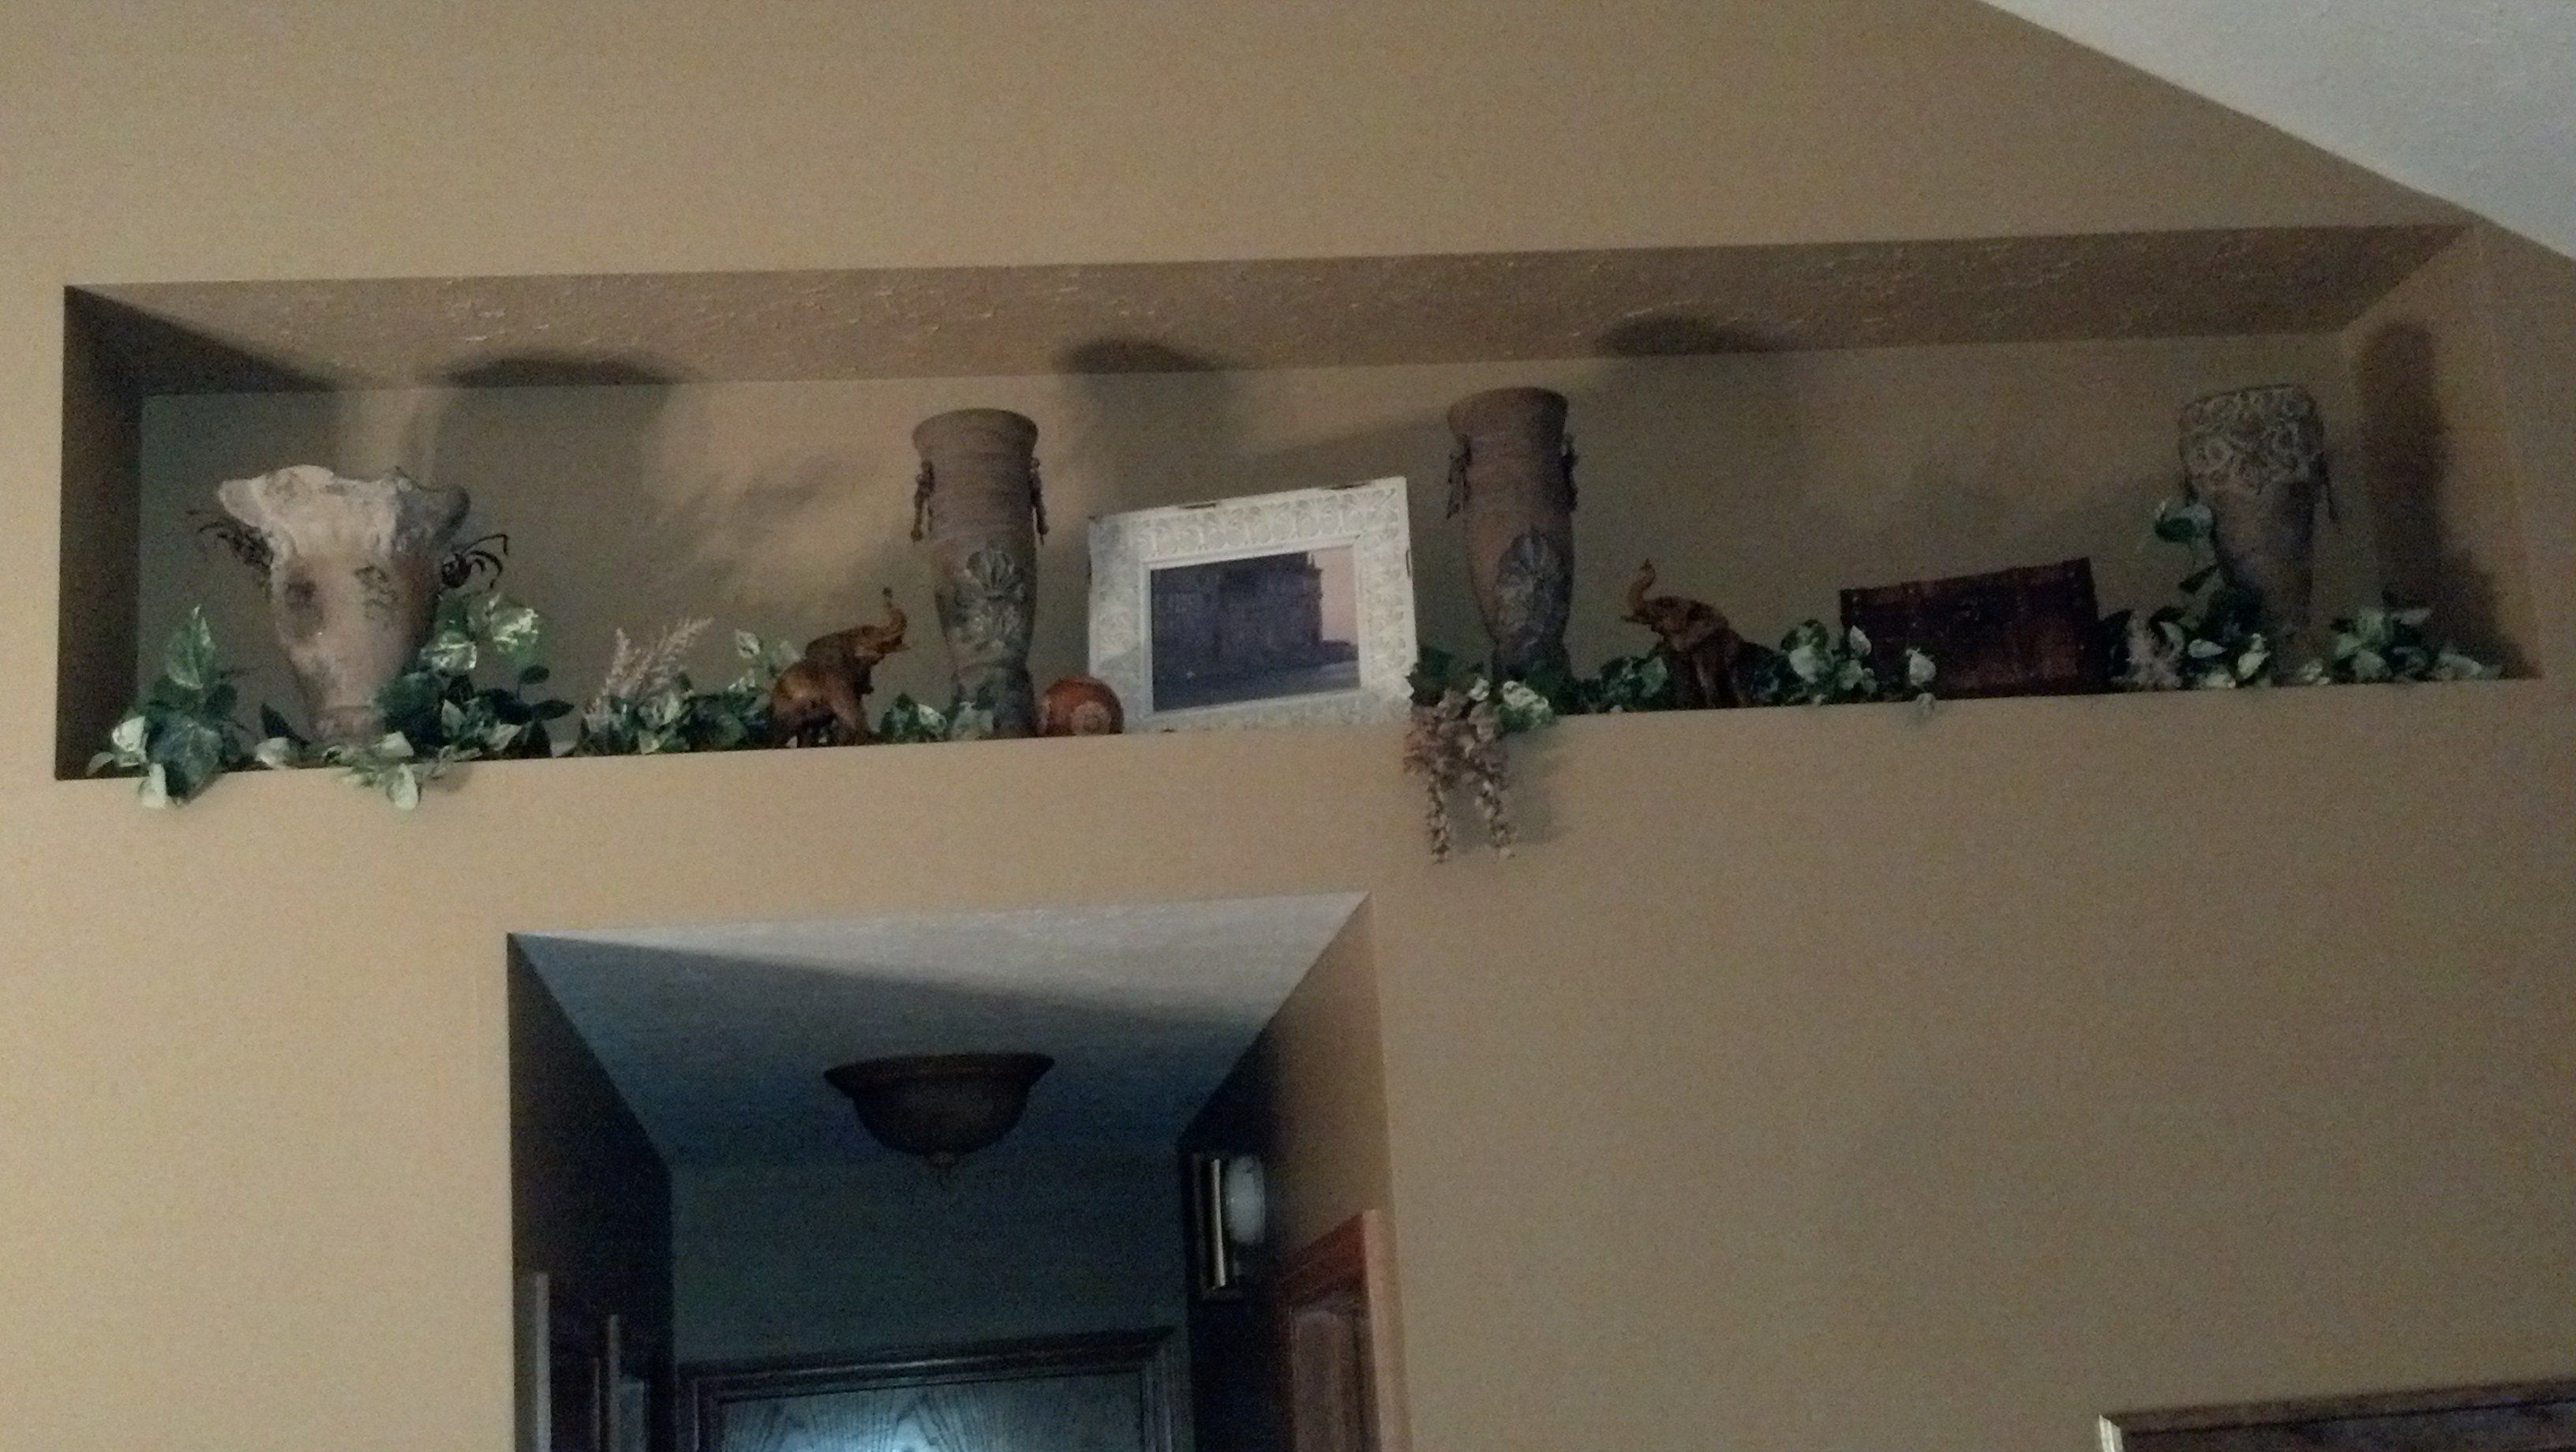 Plant Ledge Decorating